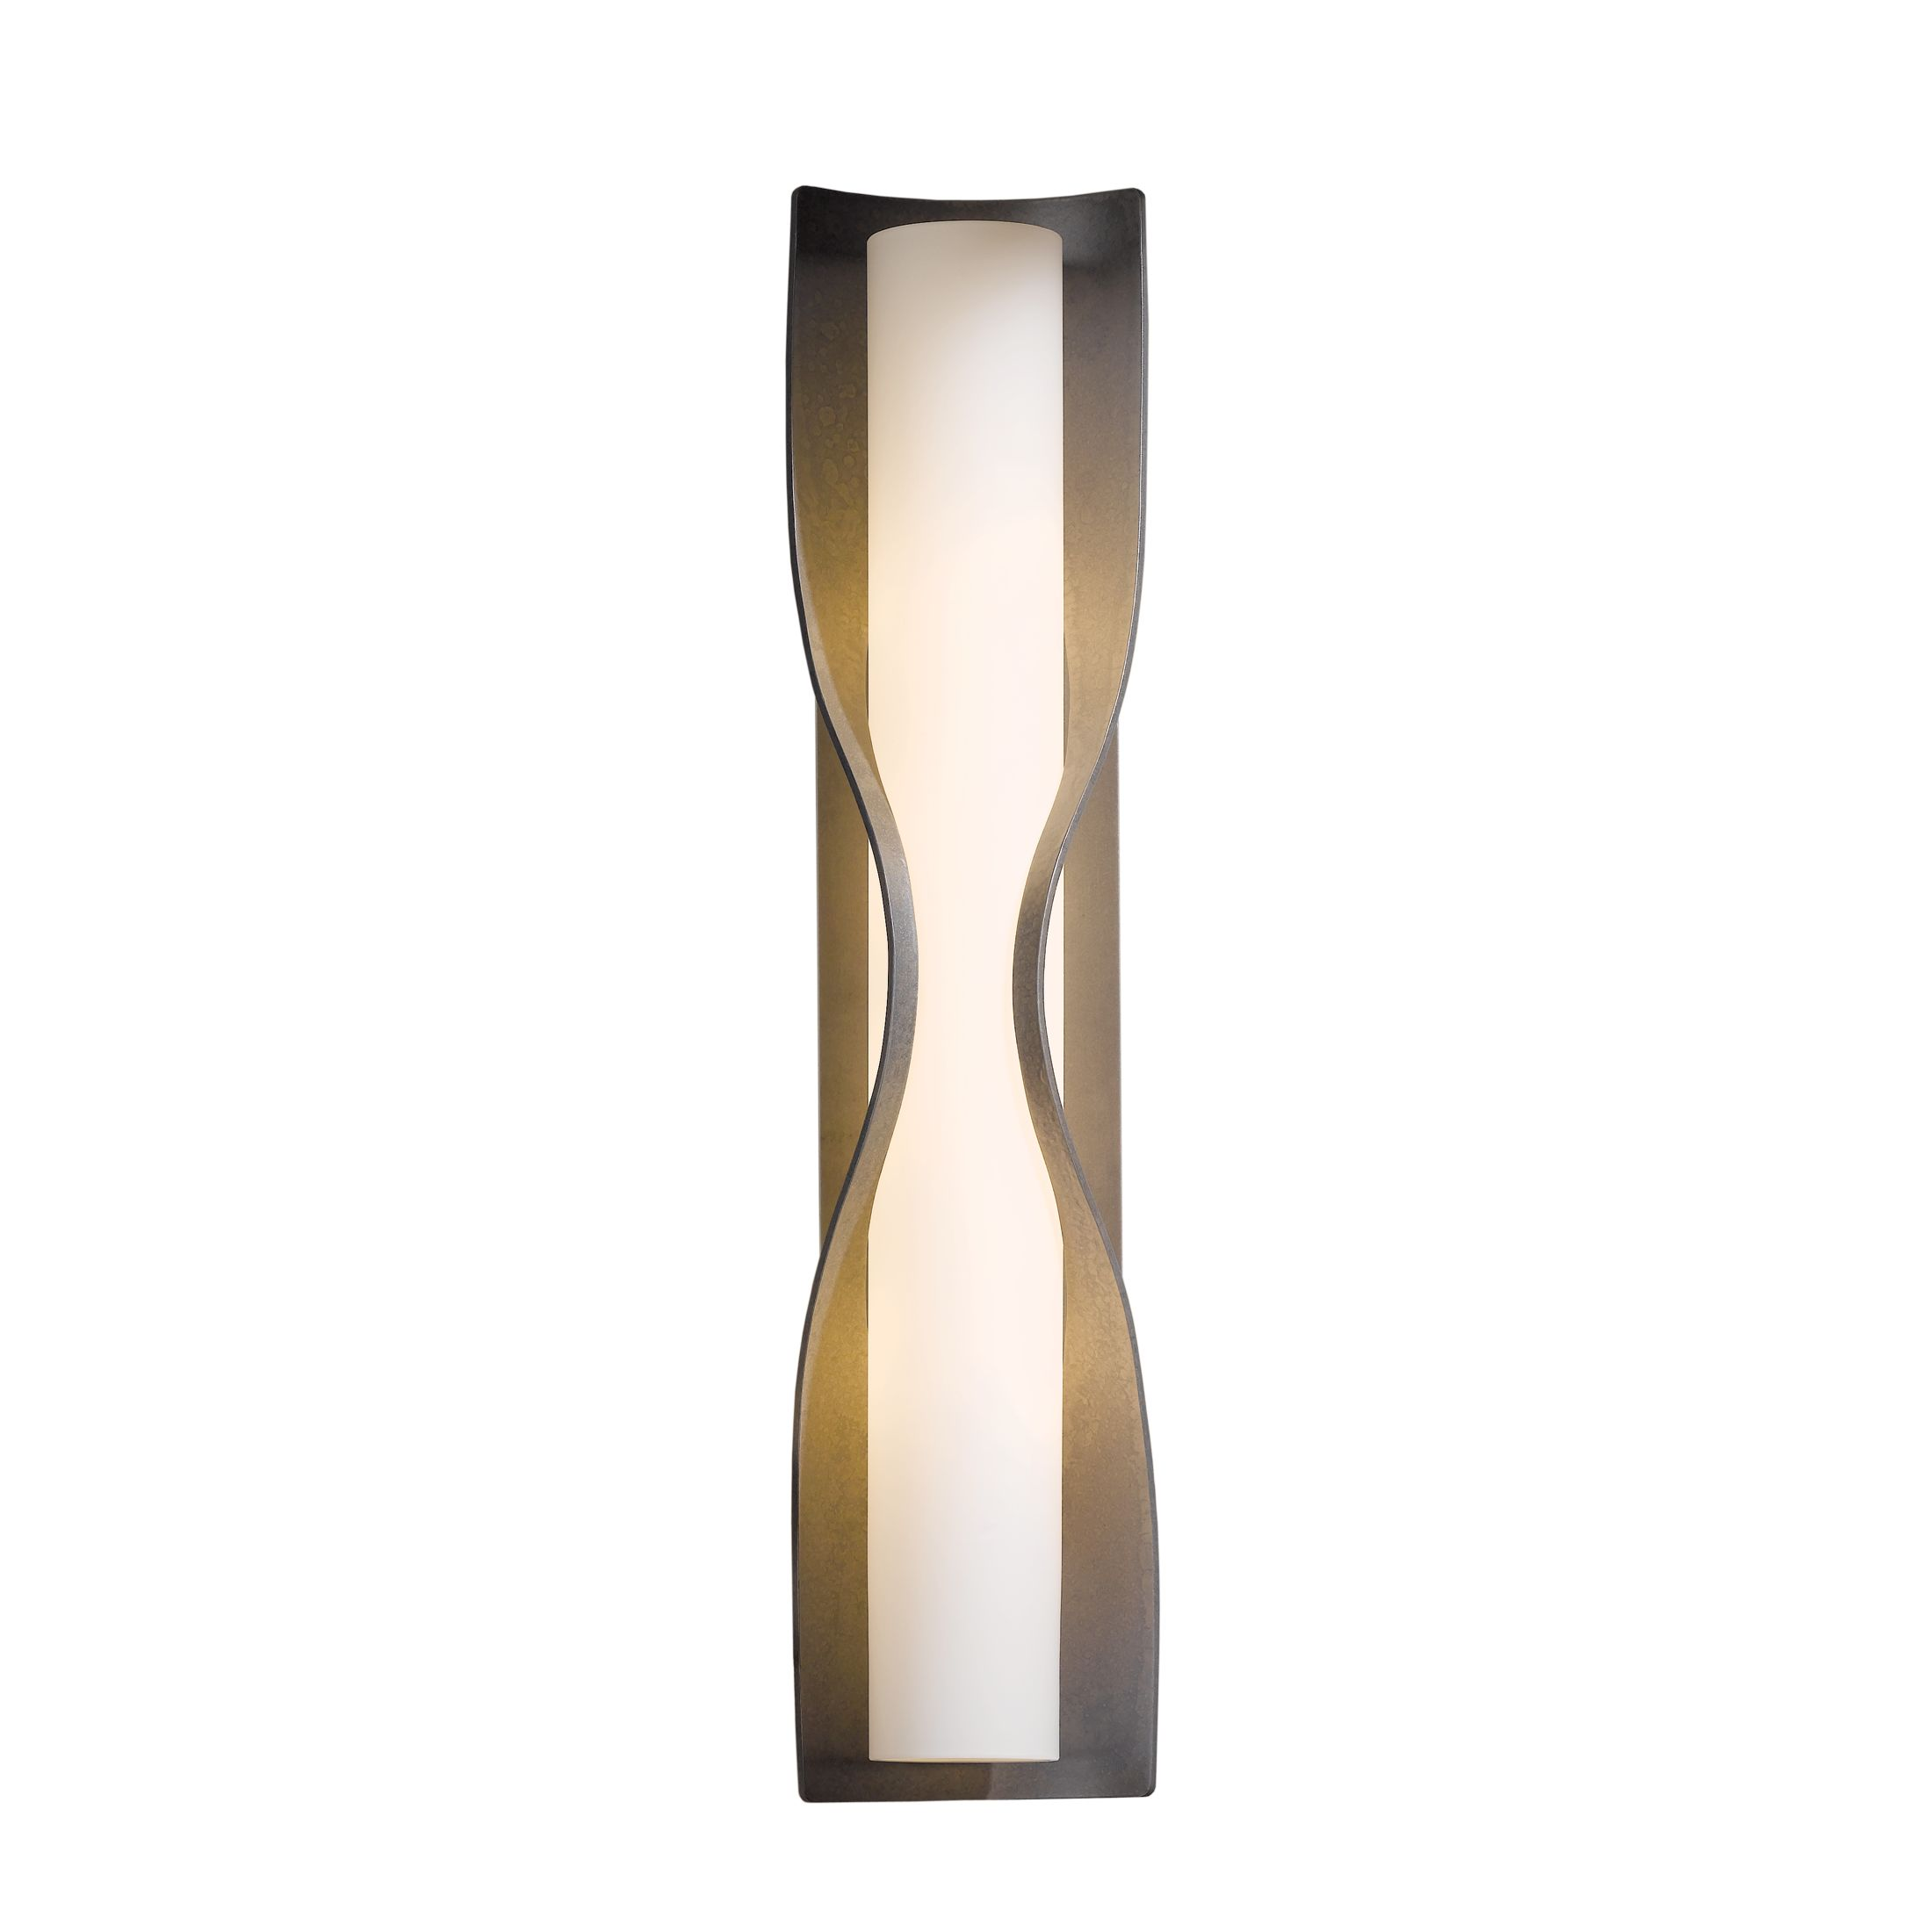 Hubbardton Forge Oculus: Forged Bar Swing Arm Sconce